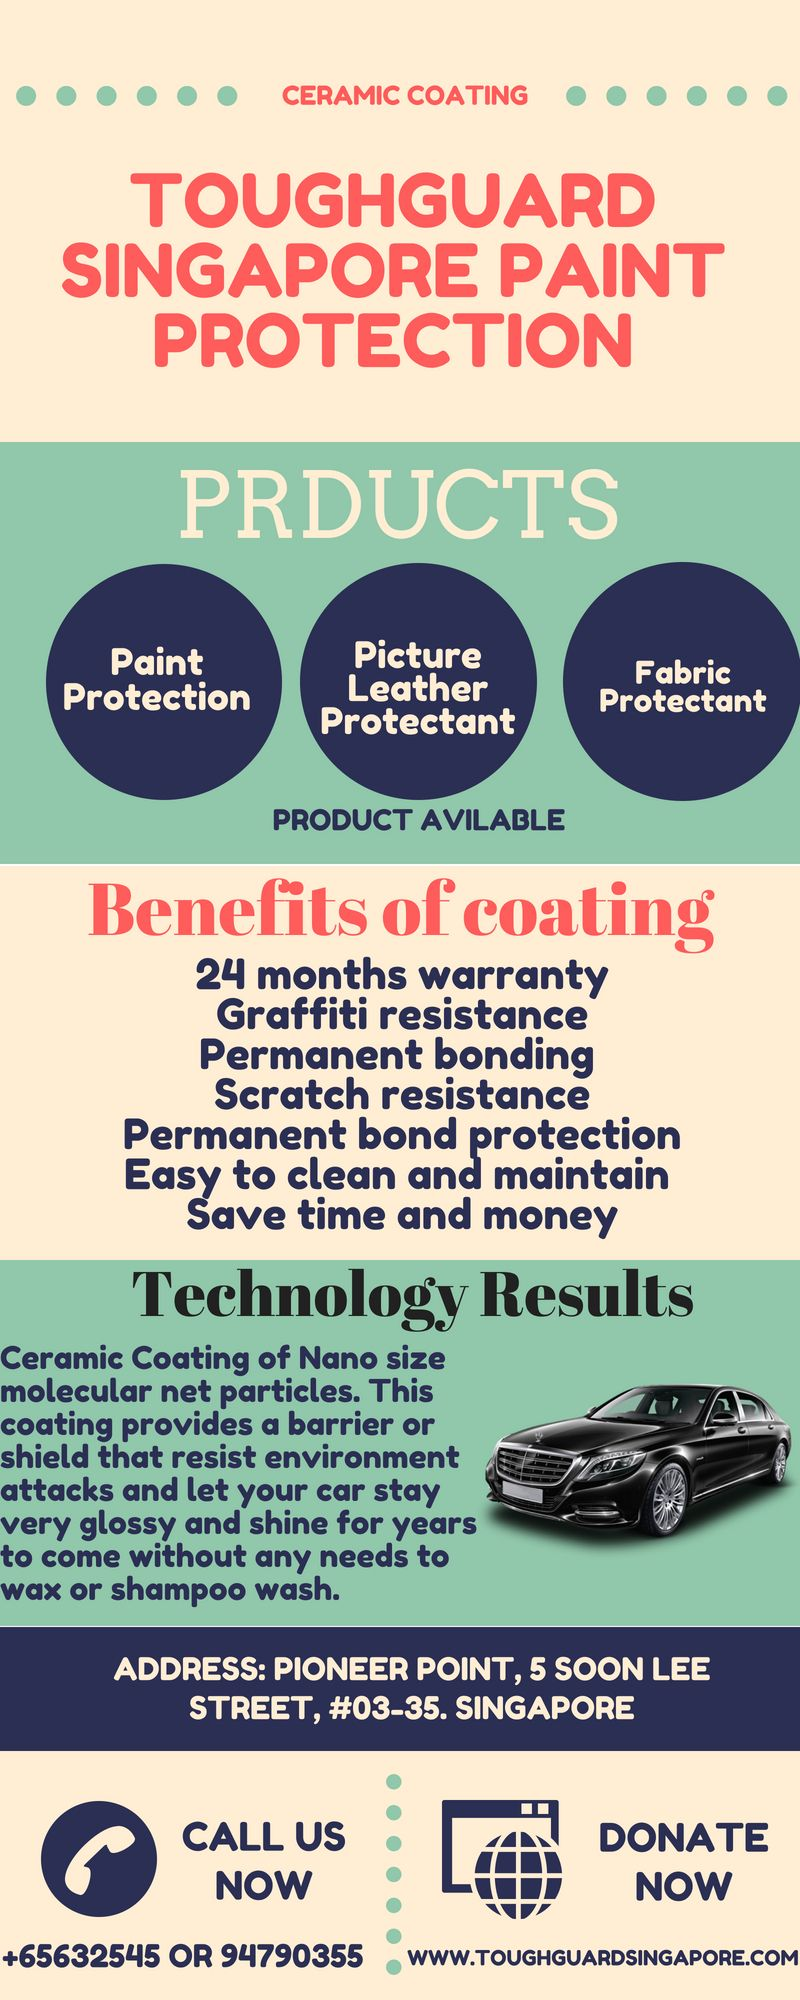 Toughguard is beating the other competing brands for ceramic coating